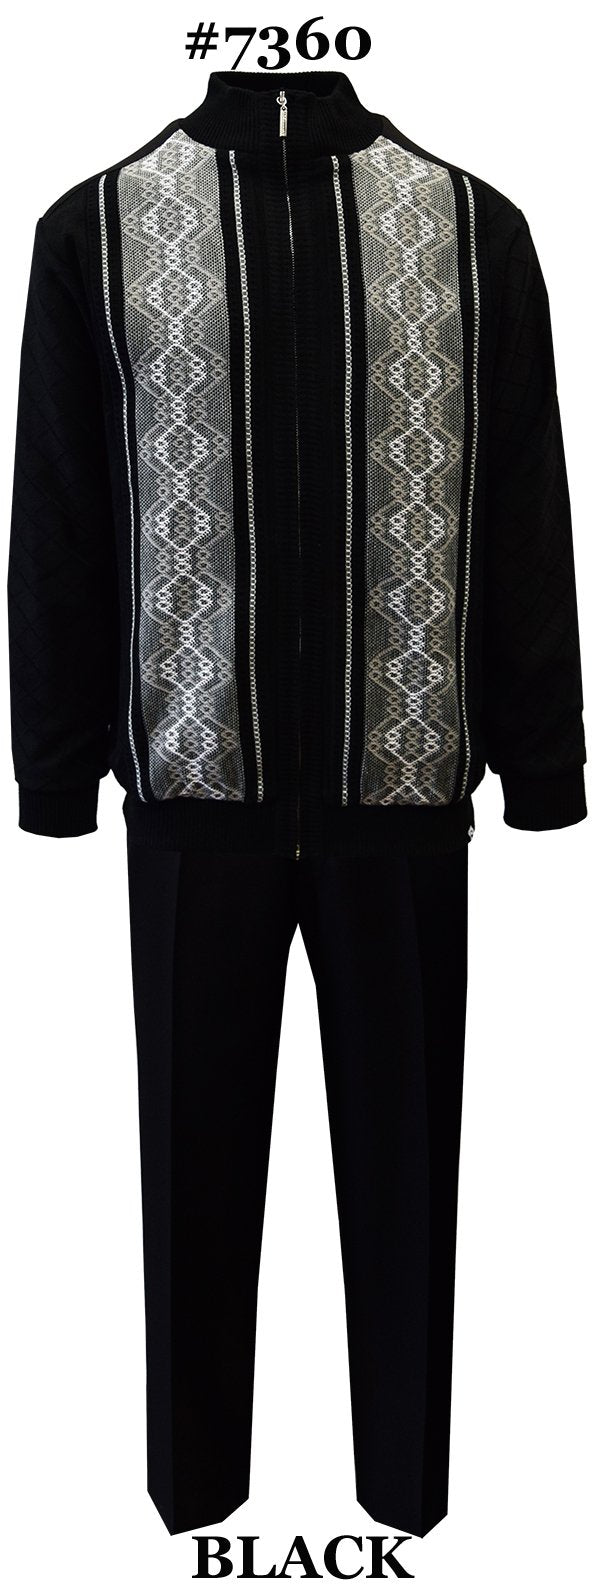 Silver Silk Men's Leisure Suit 2 Pieces With Zip Front Sweater And Matching Pants  Color - Black And White Sizes X-Large To 3X-Large